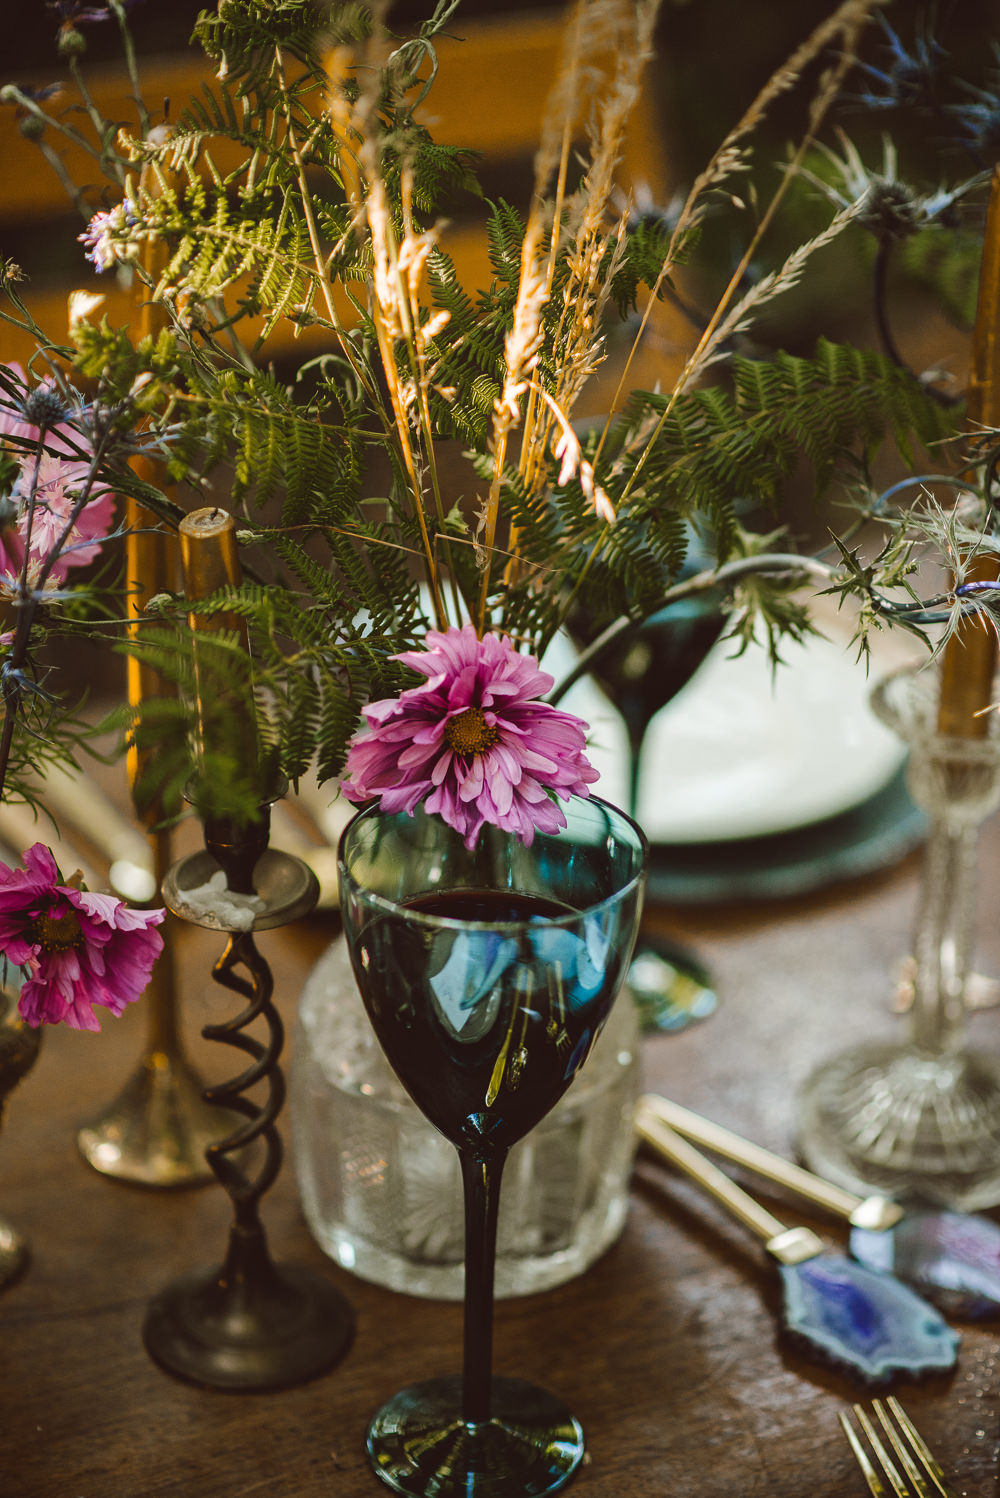 Table Flowers Pink Greenery Foliage Ethereal Magical Golden Hour Wedding Ideas Dhw Photography